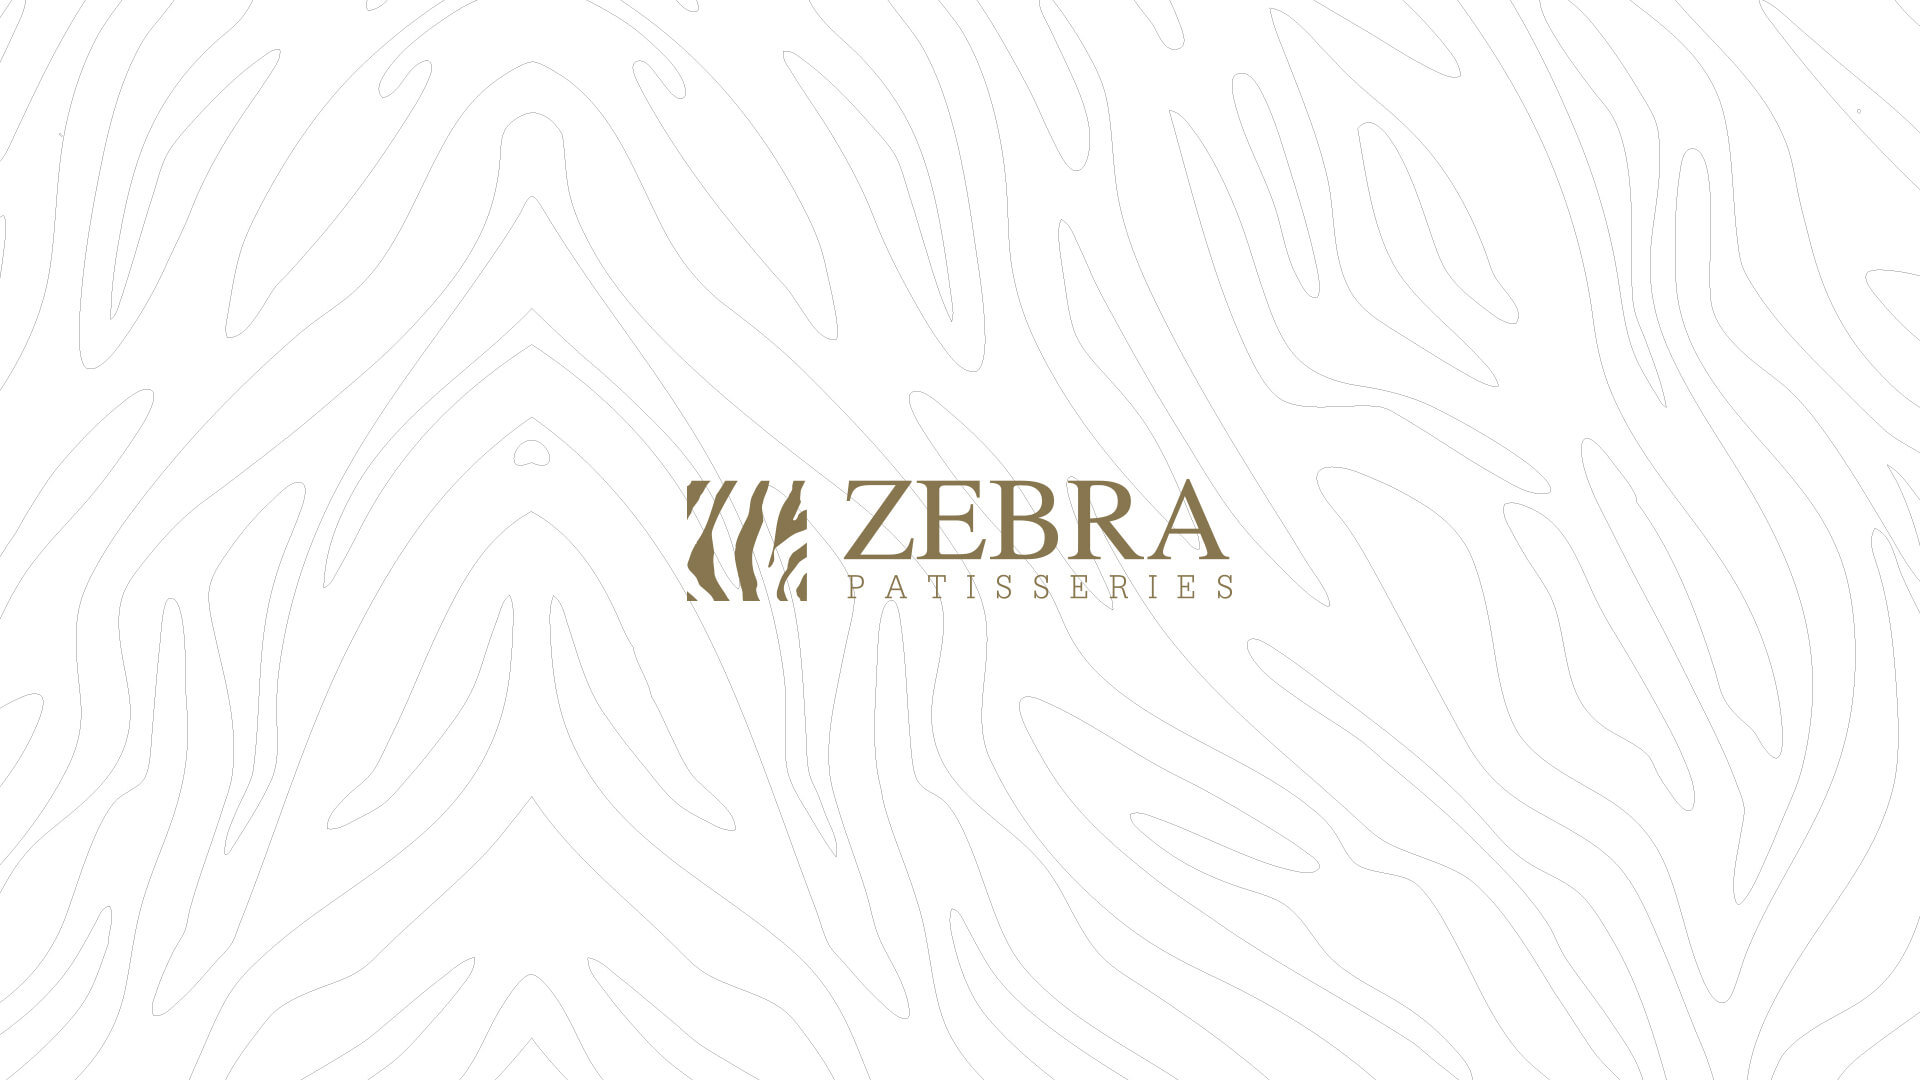 Zebra Patisseries